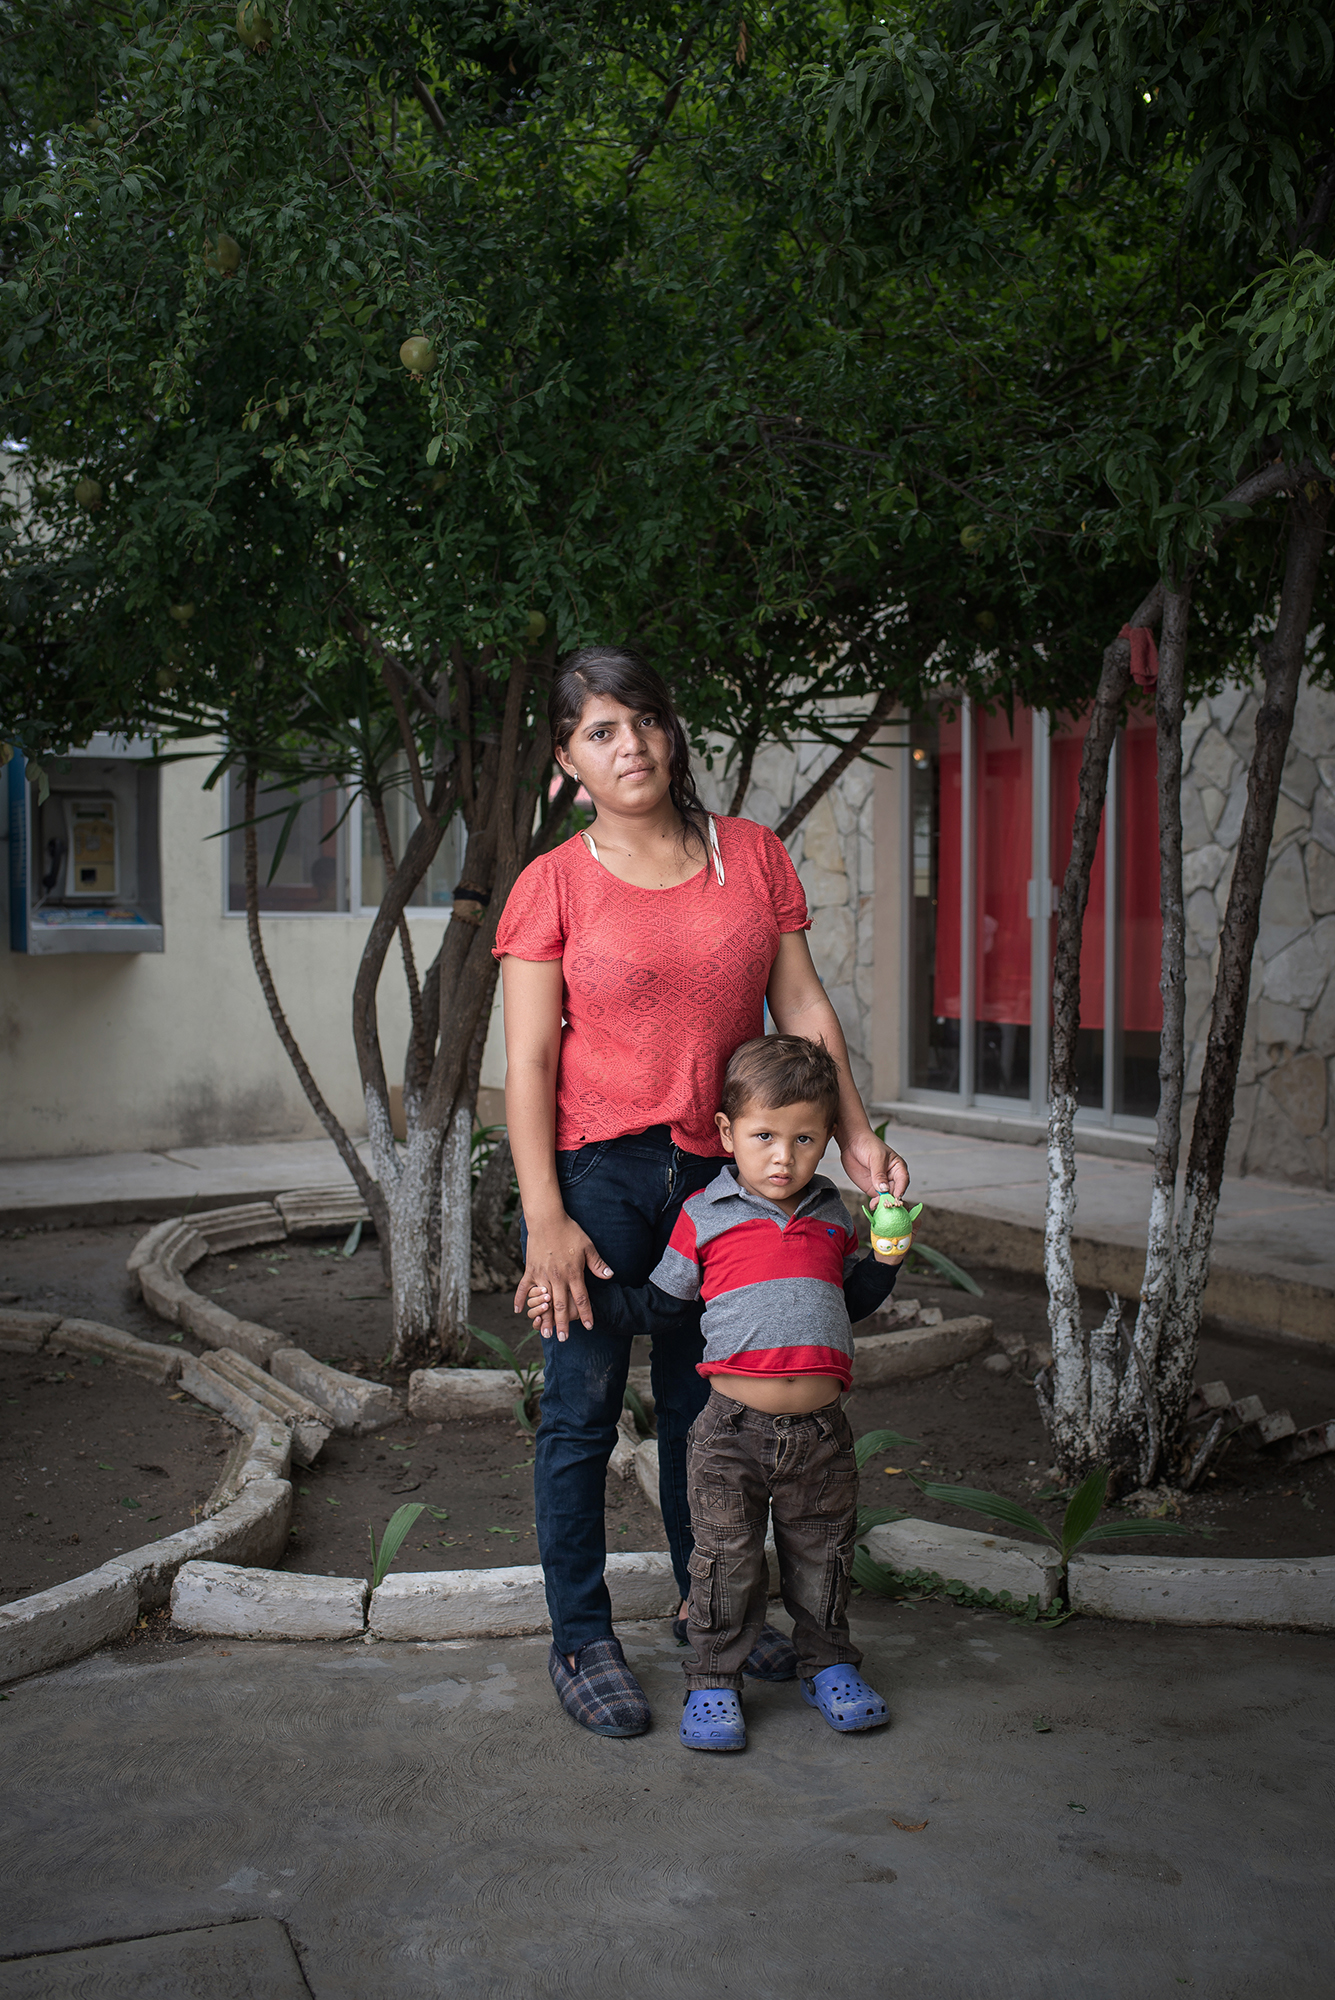 """Portrait of Diana Marisol (19 years old) and her son Denis Jose (3 years old) at """"Casa del Migrante Frontera Digna"""" created by priest Jose Guadalupe Valdes Alvarado. Diana left her homecountry Honduras due to the violent situation her country is facing; """"I didn't want that future for my kid"""", she said. """"Casa del Migrante Frontera Digna"""" was created to provide lodging for migrants from different countries who arrive after long journeys that last several months to cross into the United States. Immigrants can spend three nights in the shelter where they are offered beds, food, hygiene items and a space to regain strength. Piedras Negras, Coahuila, Mexico. June 21st, 2018. Photographer: Luján Agusti."""